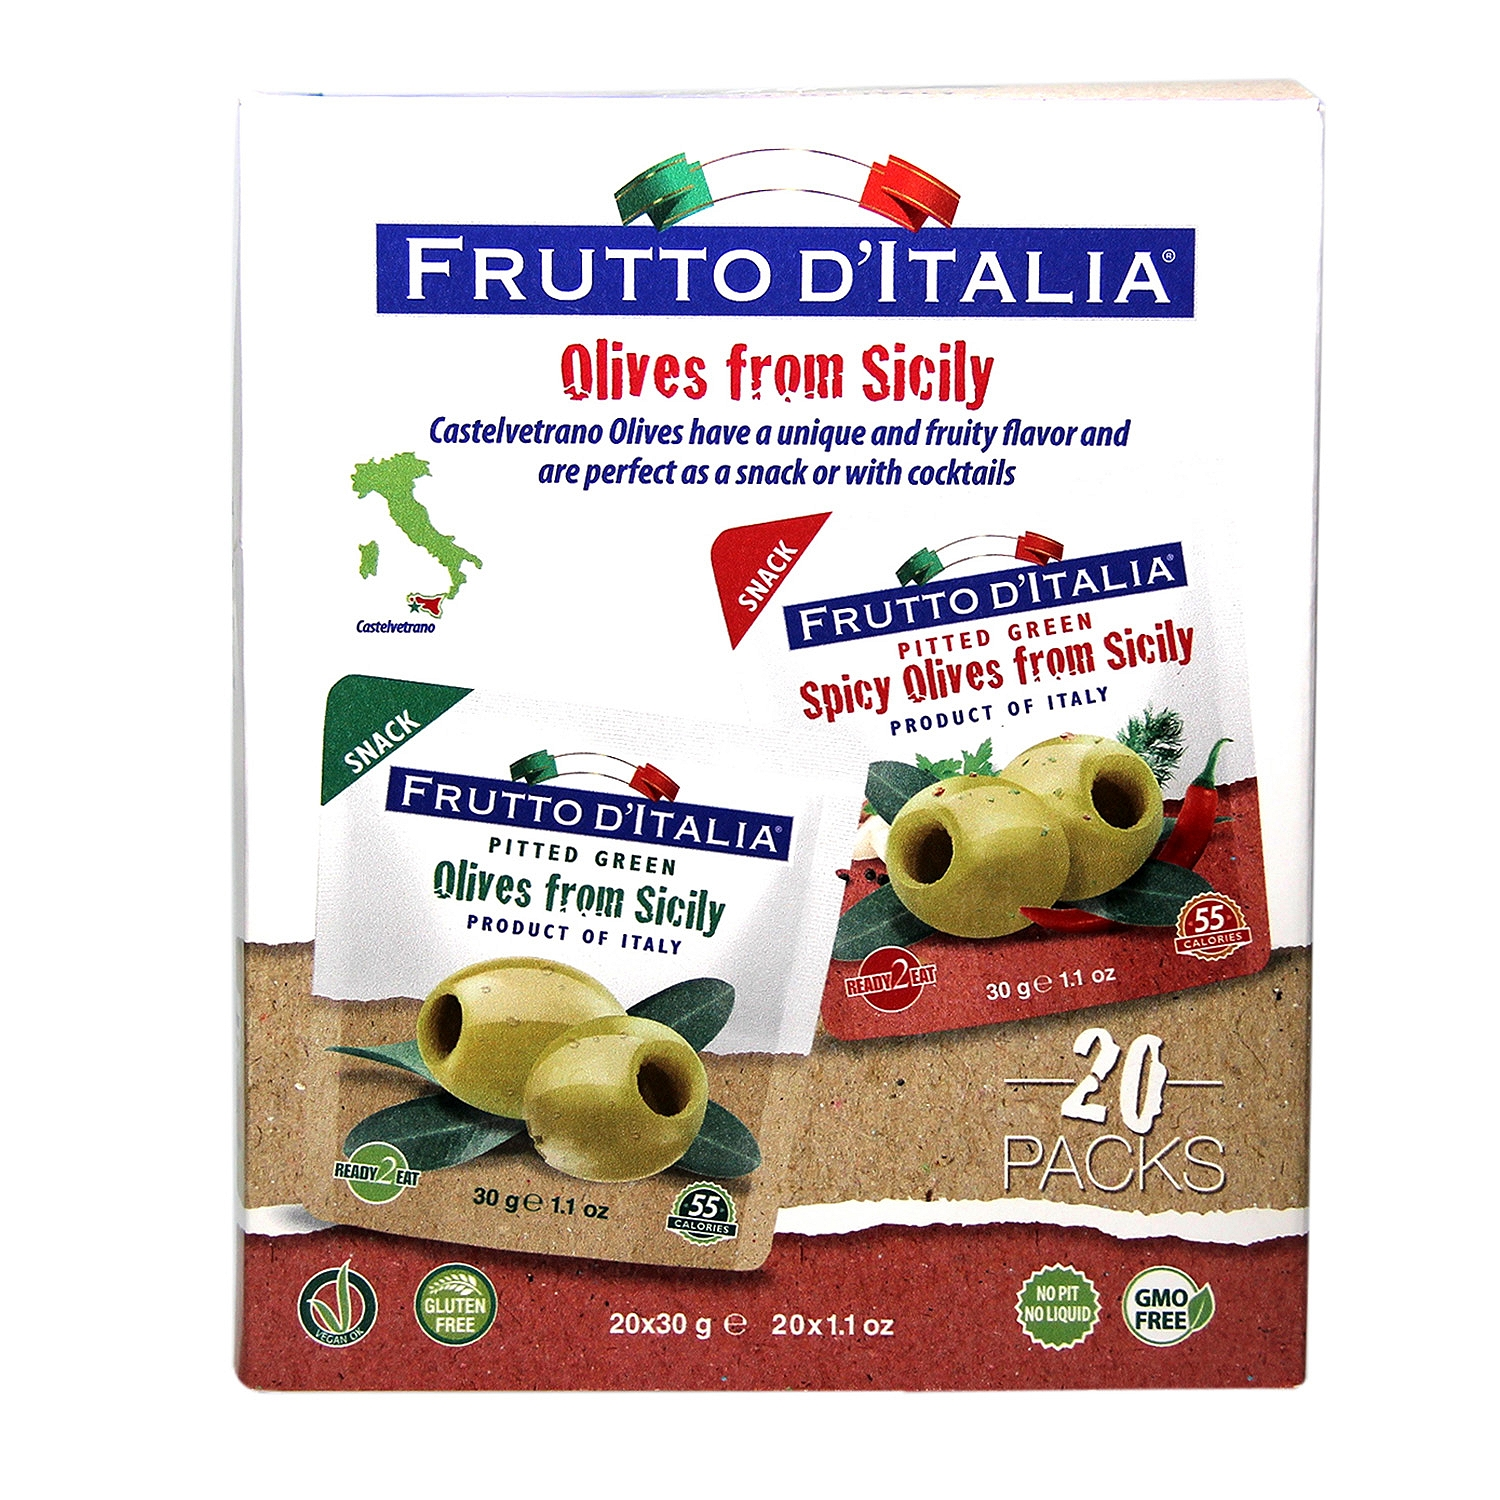 Frutto D'italia Snacking Olives (1.1 oz. ea., 20 ct.) by